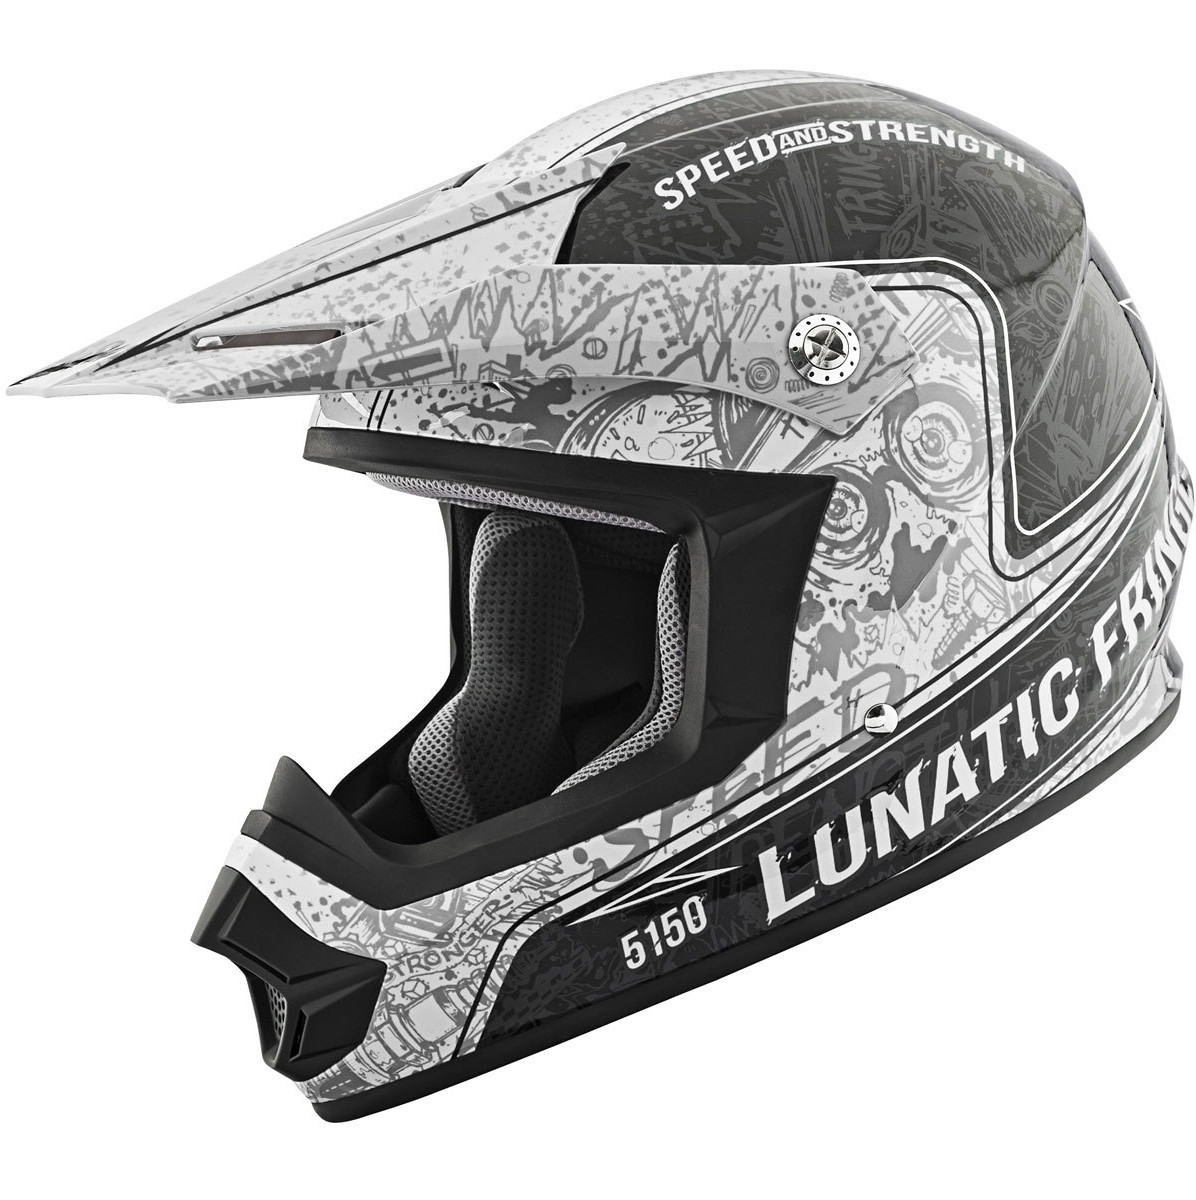 2015-speed-and-strength-ss2400-lunatic-fringe-helmet-mcss.jpg